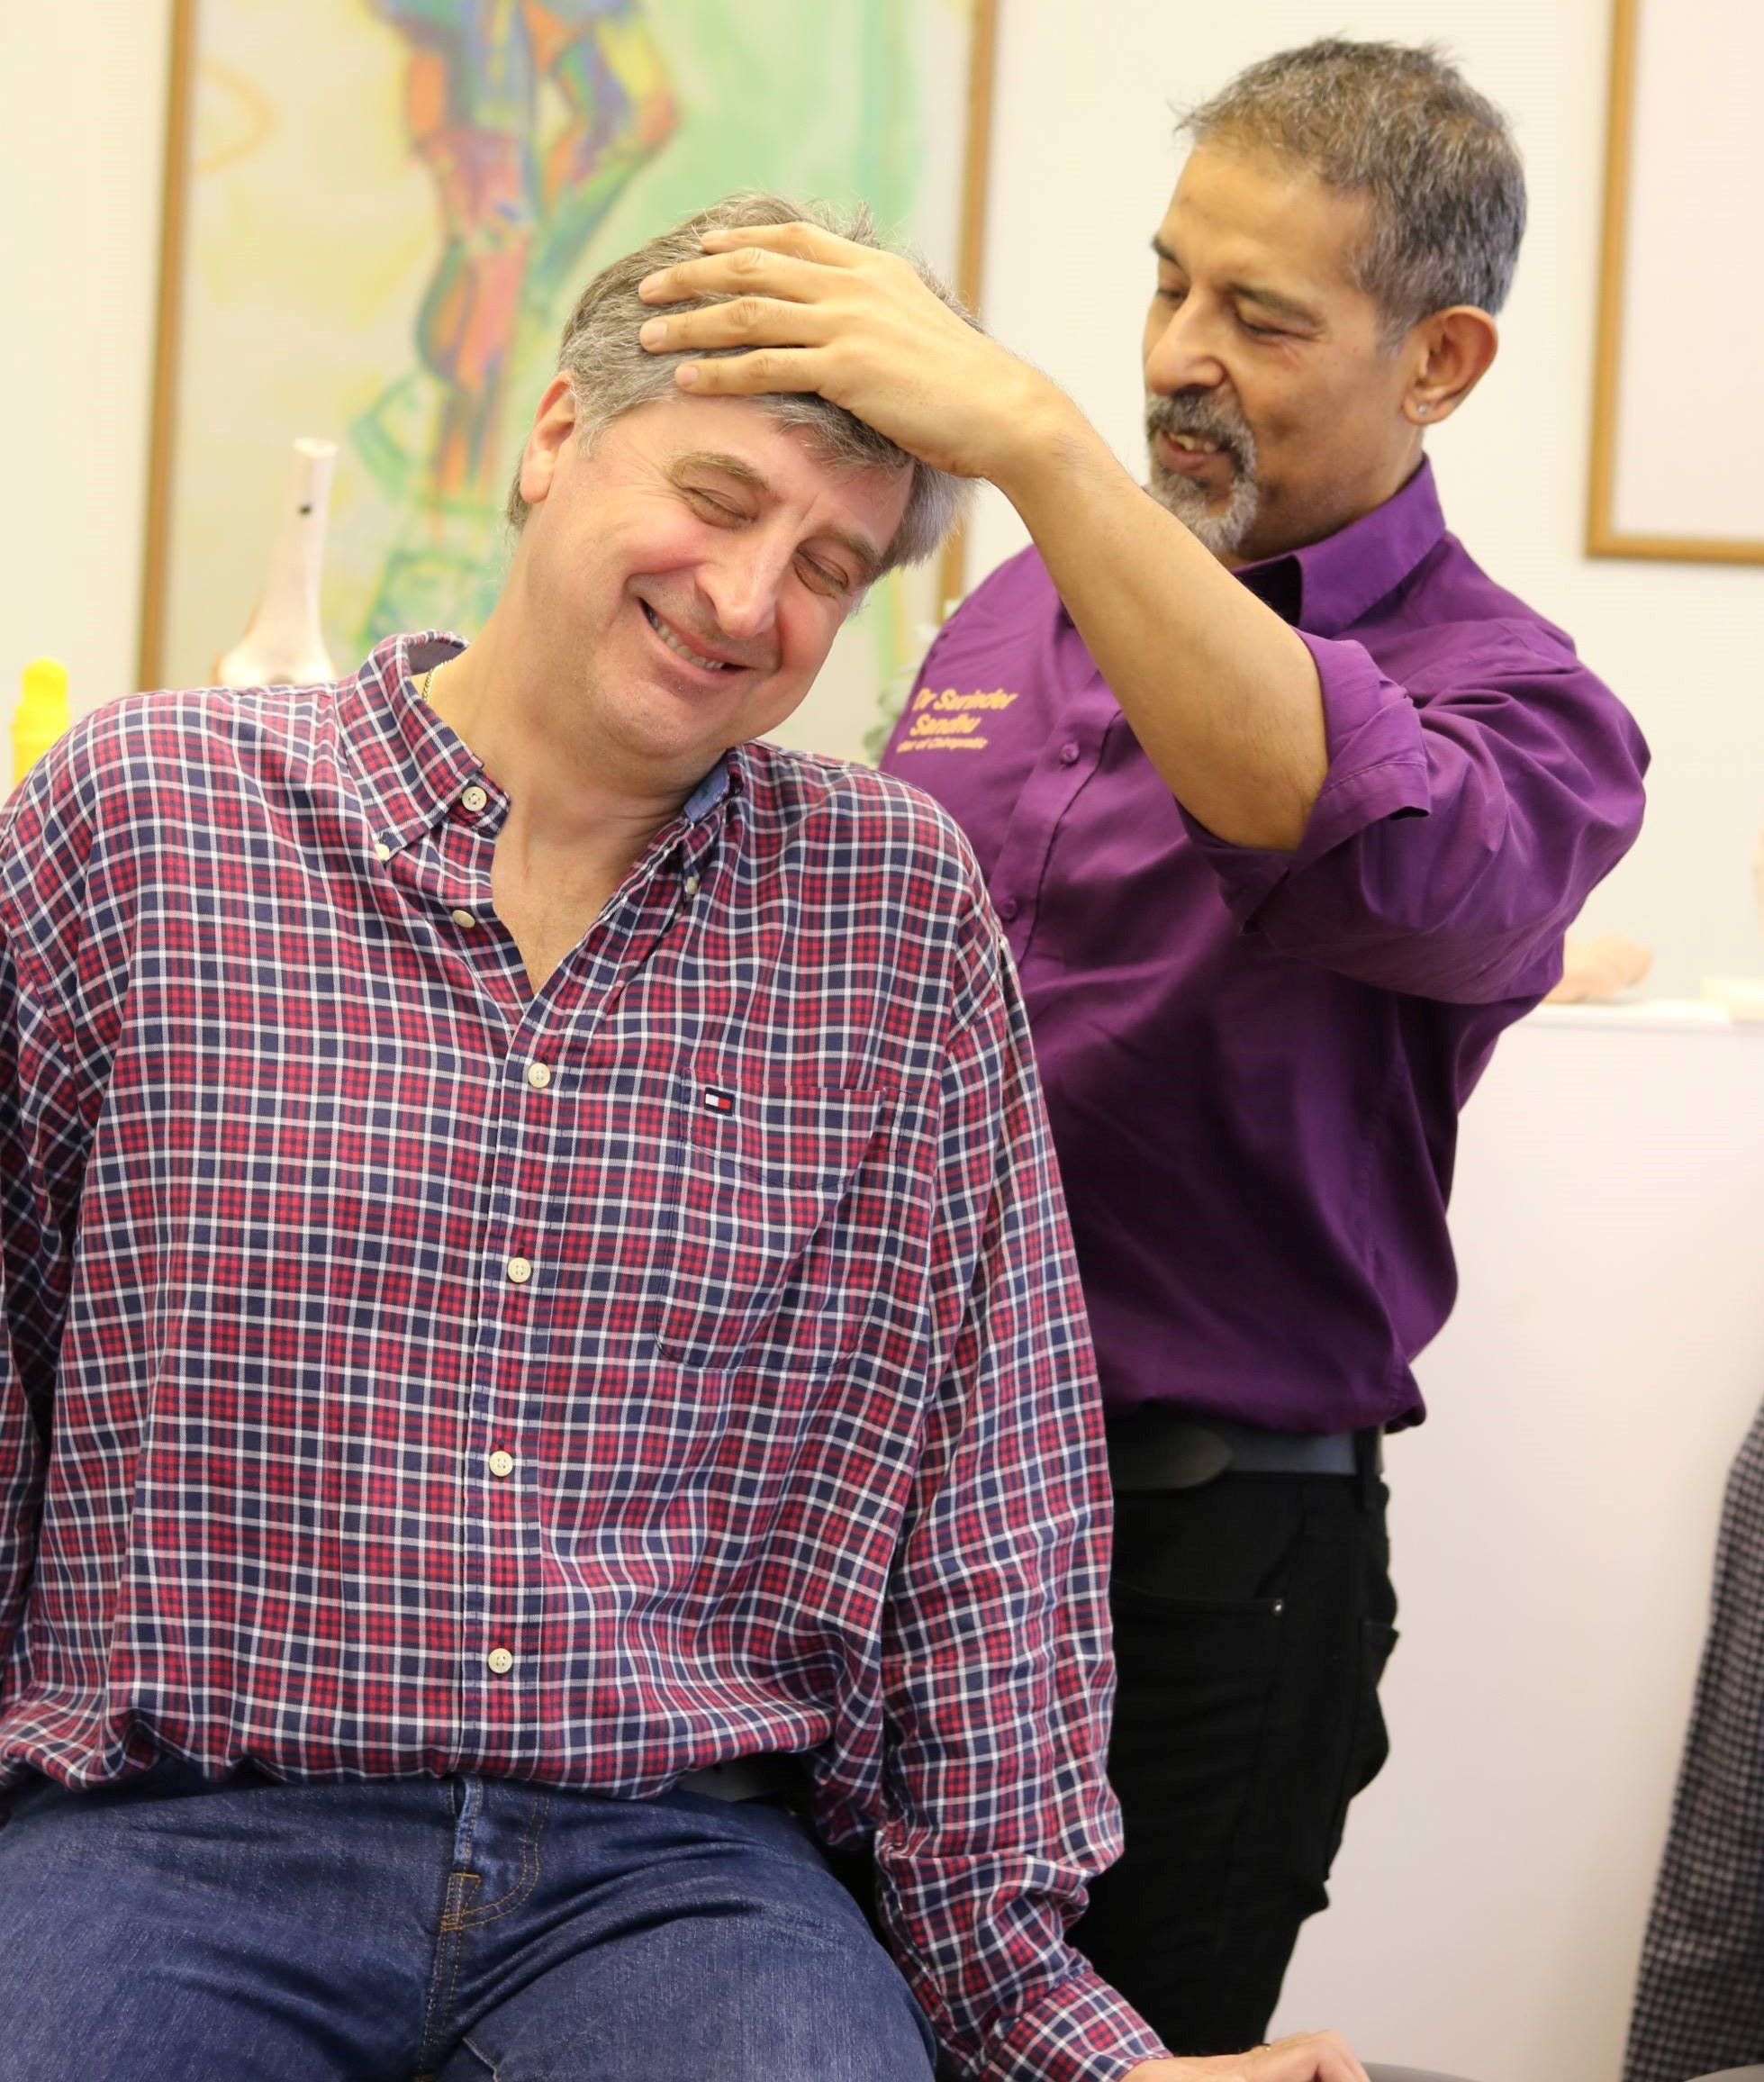 Older man smiling whilst receiving chiropractic treatment for neck pain